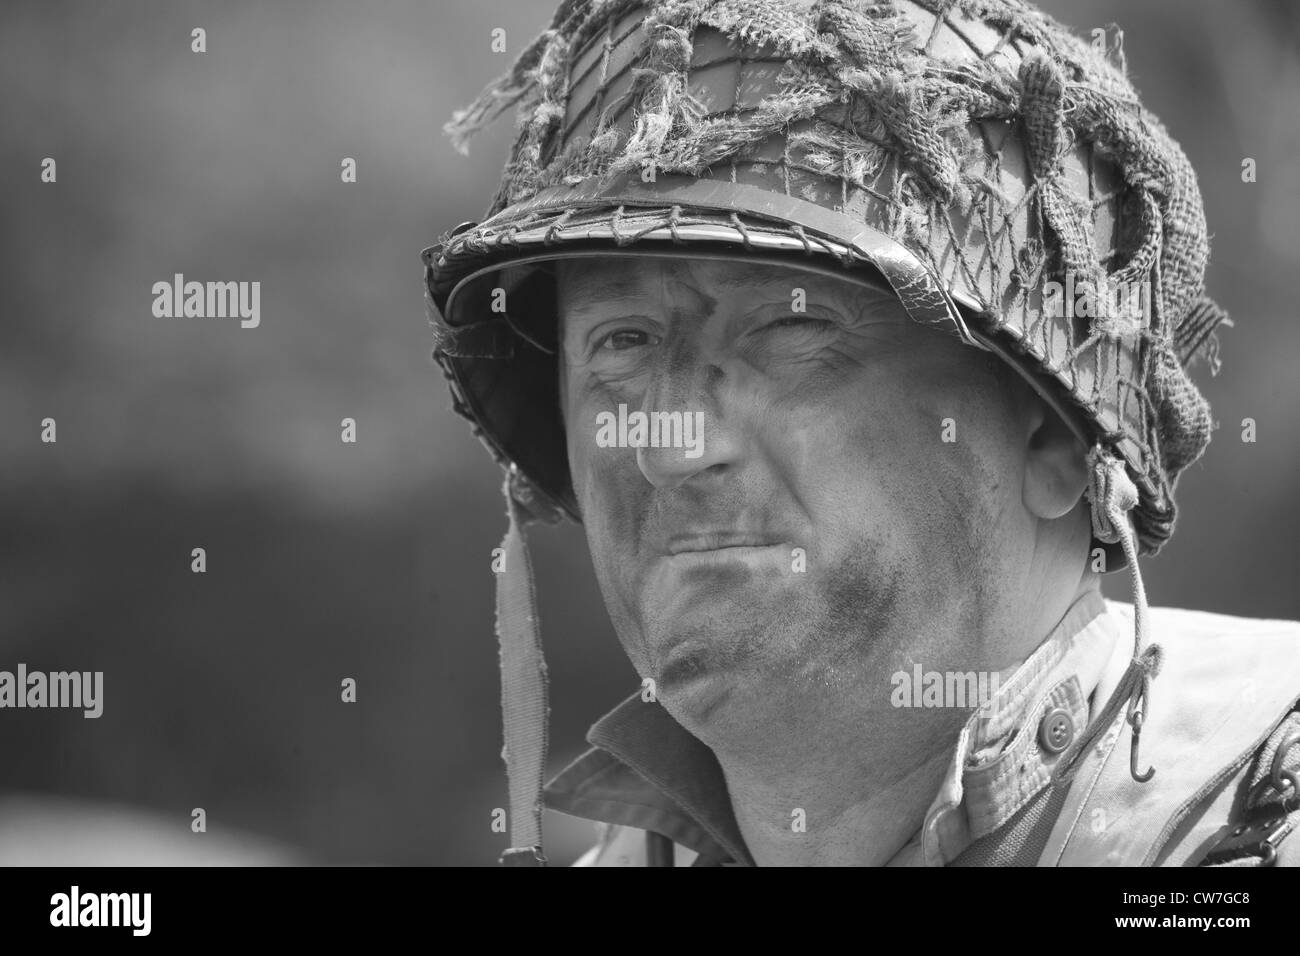 Re-enactor playing 1940's American Soldier - Stock Image